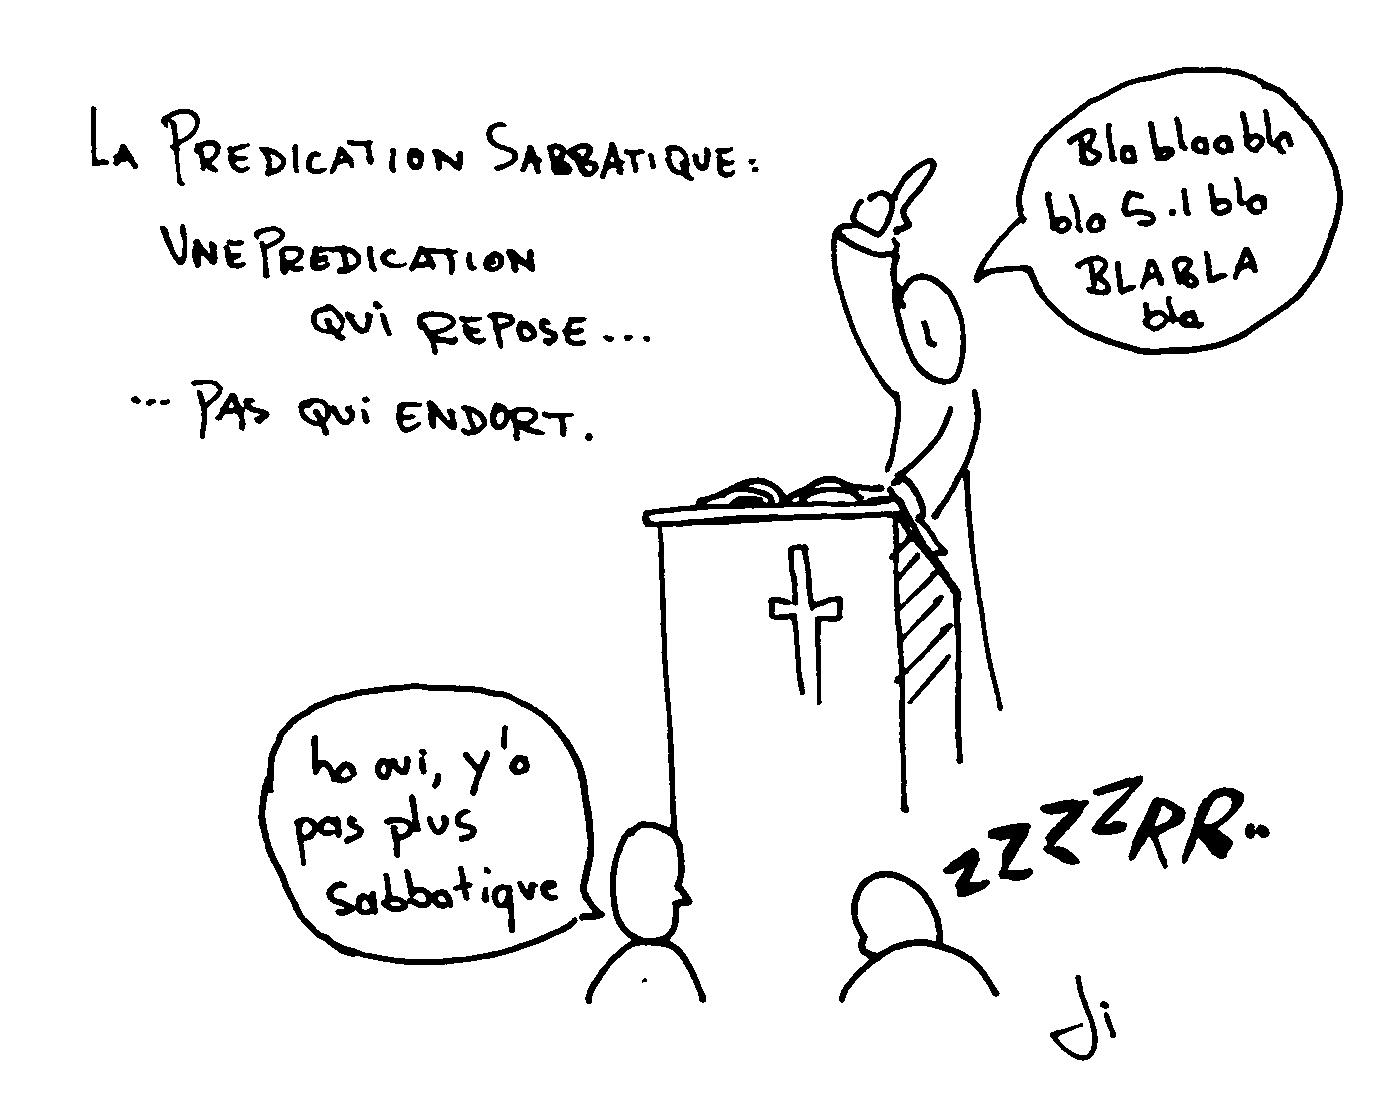 predication-sabbatique-benjamin